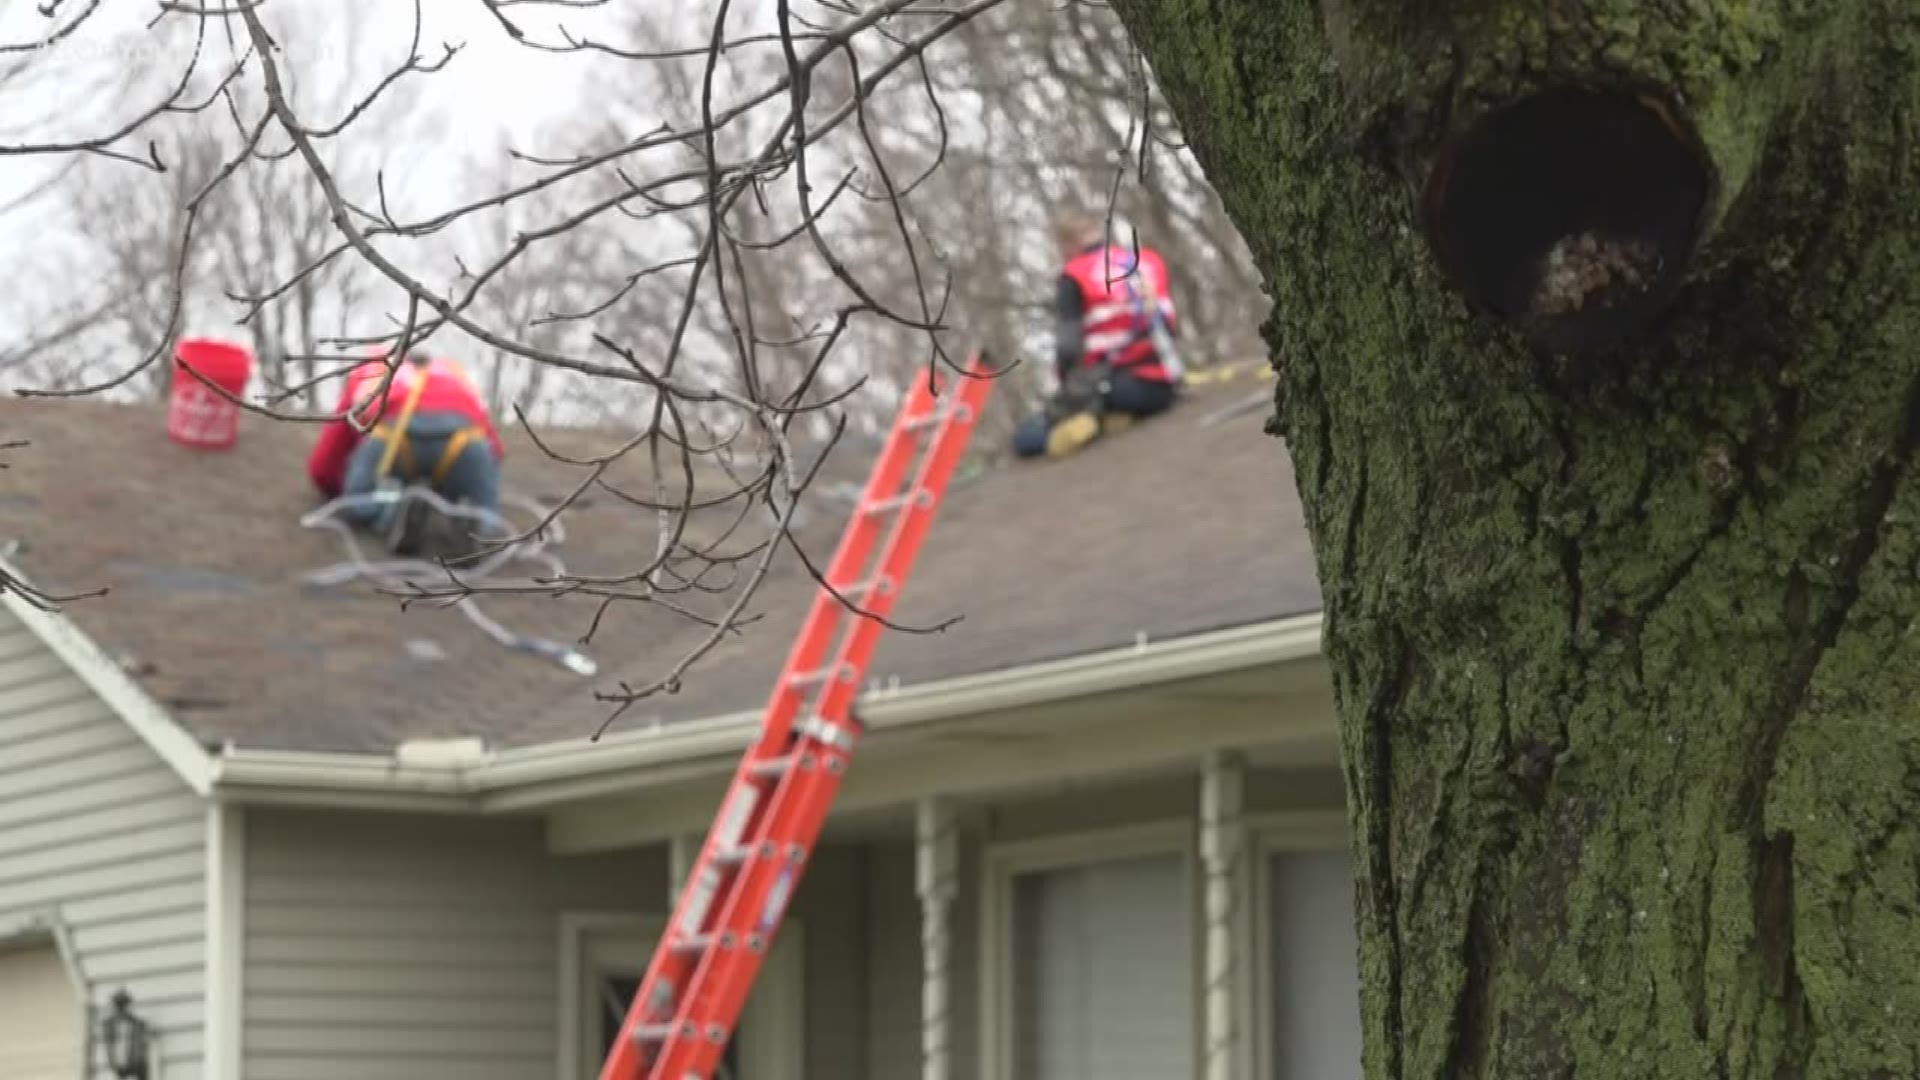 Ottawa County Roofing Company Offers Free Emergency